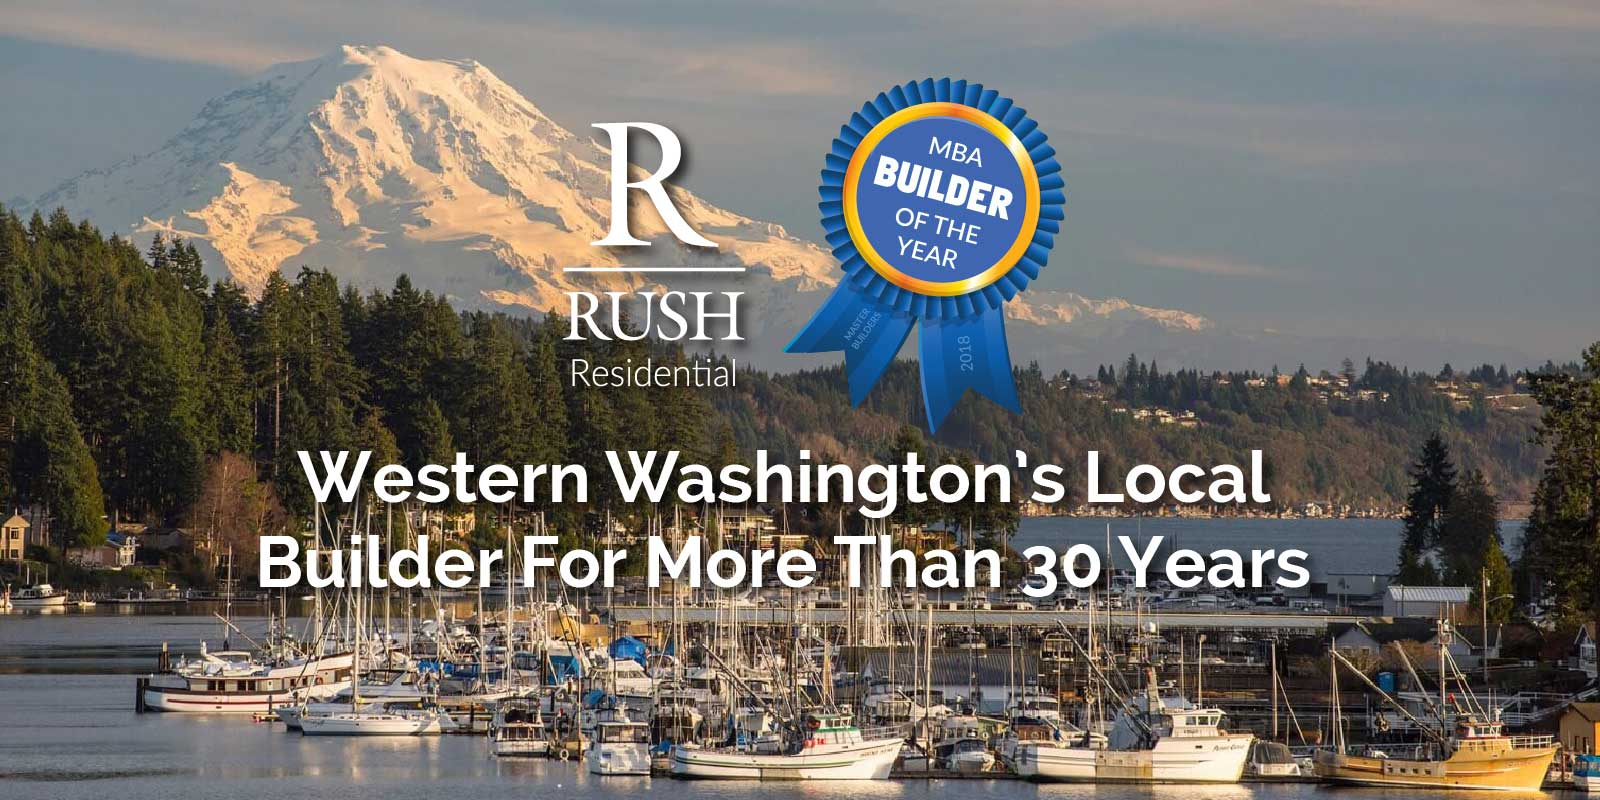 Rush Residential | Homebuilder | New Homes in the Puget